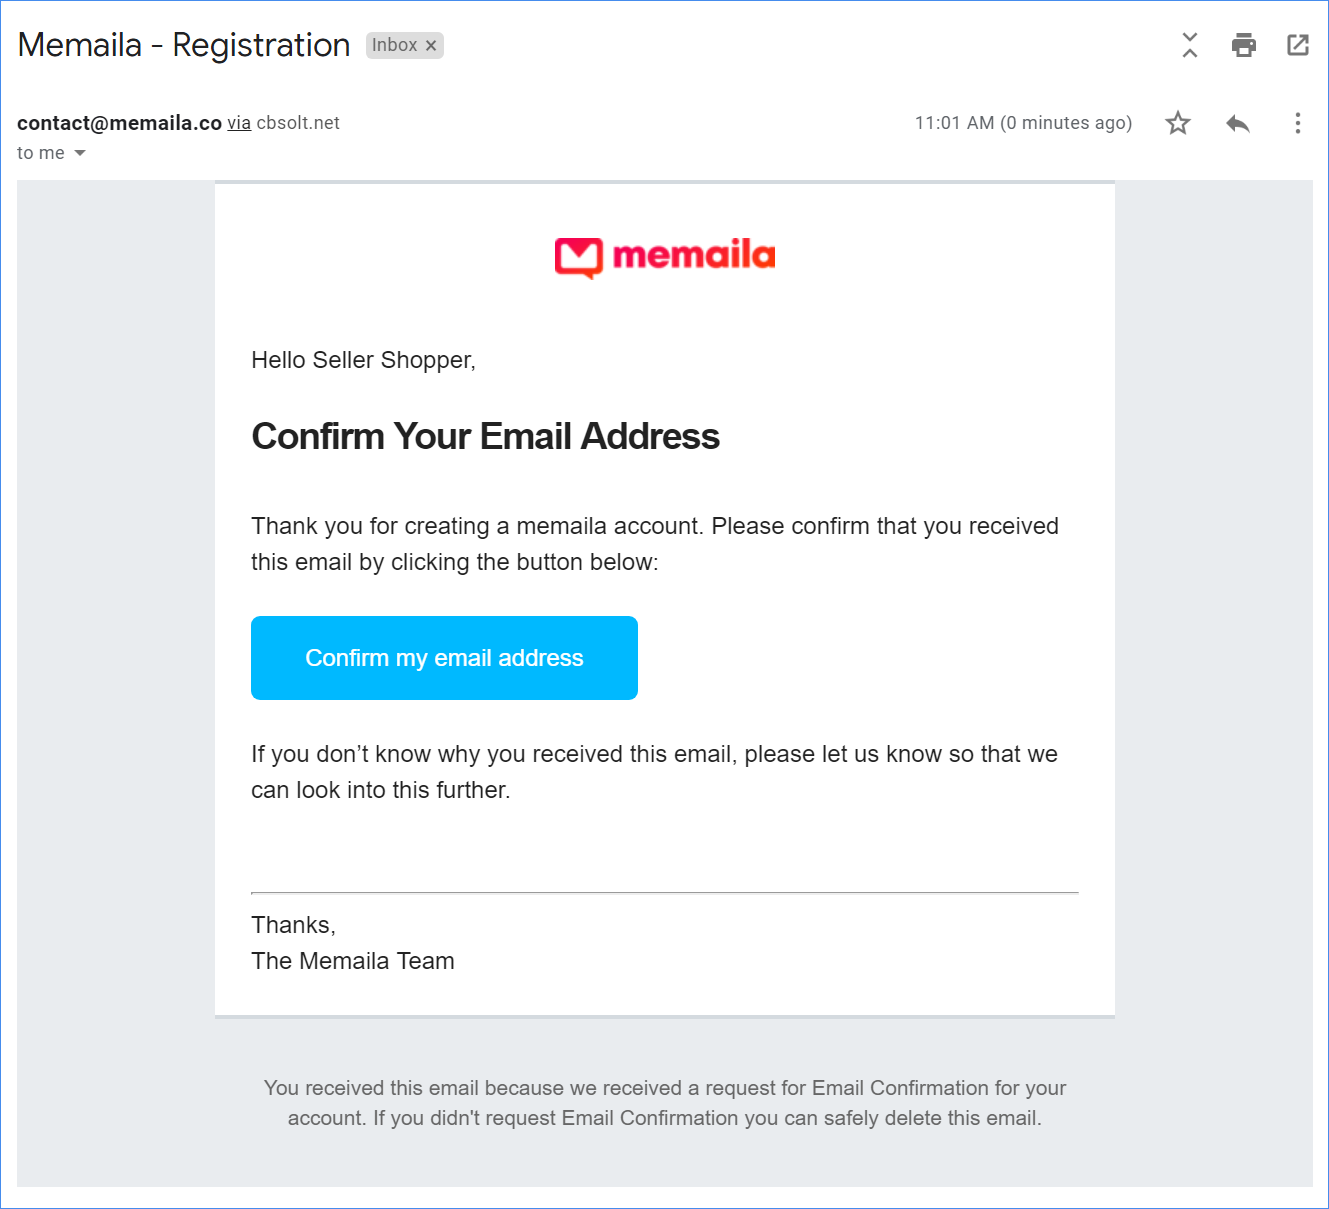 Confirm your email address from the Memaila setup email